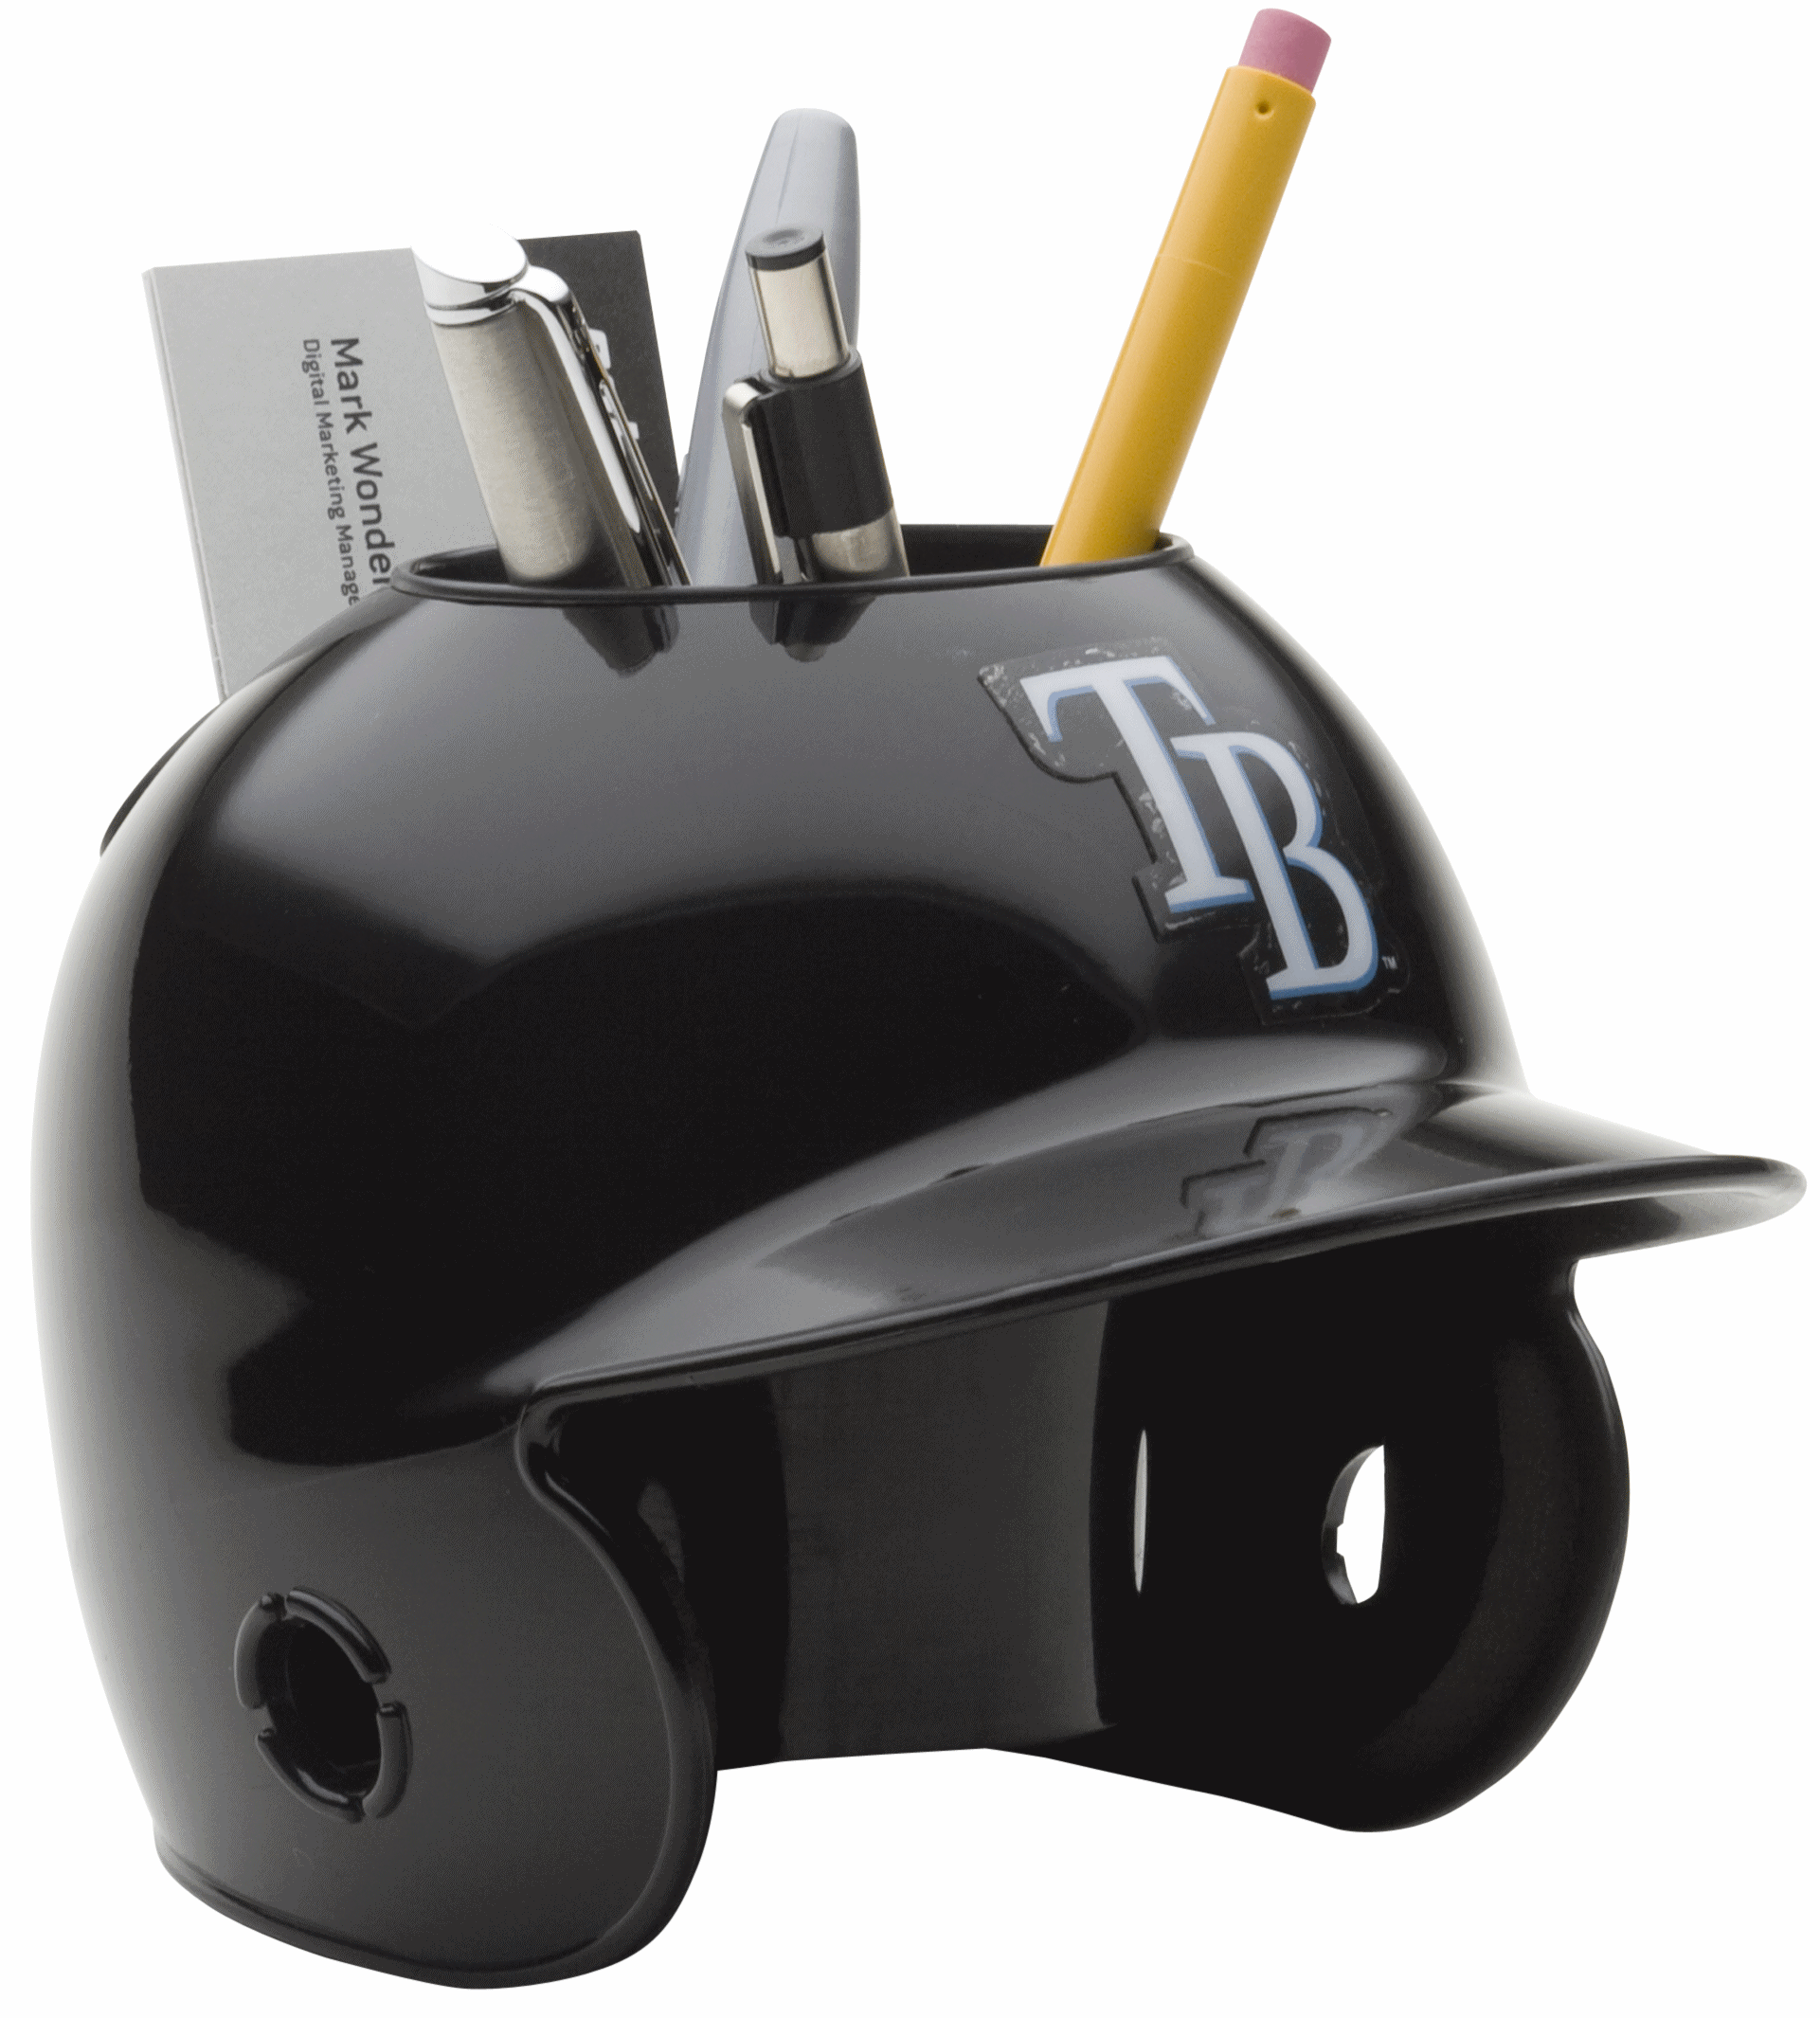 Tampa Bay Rays Miniature Batters Helmet Desk Caddy